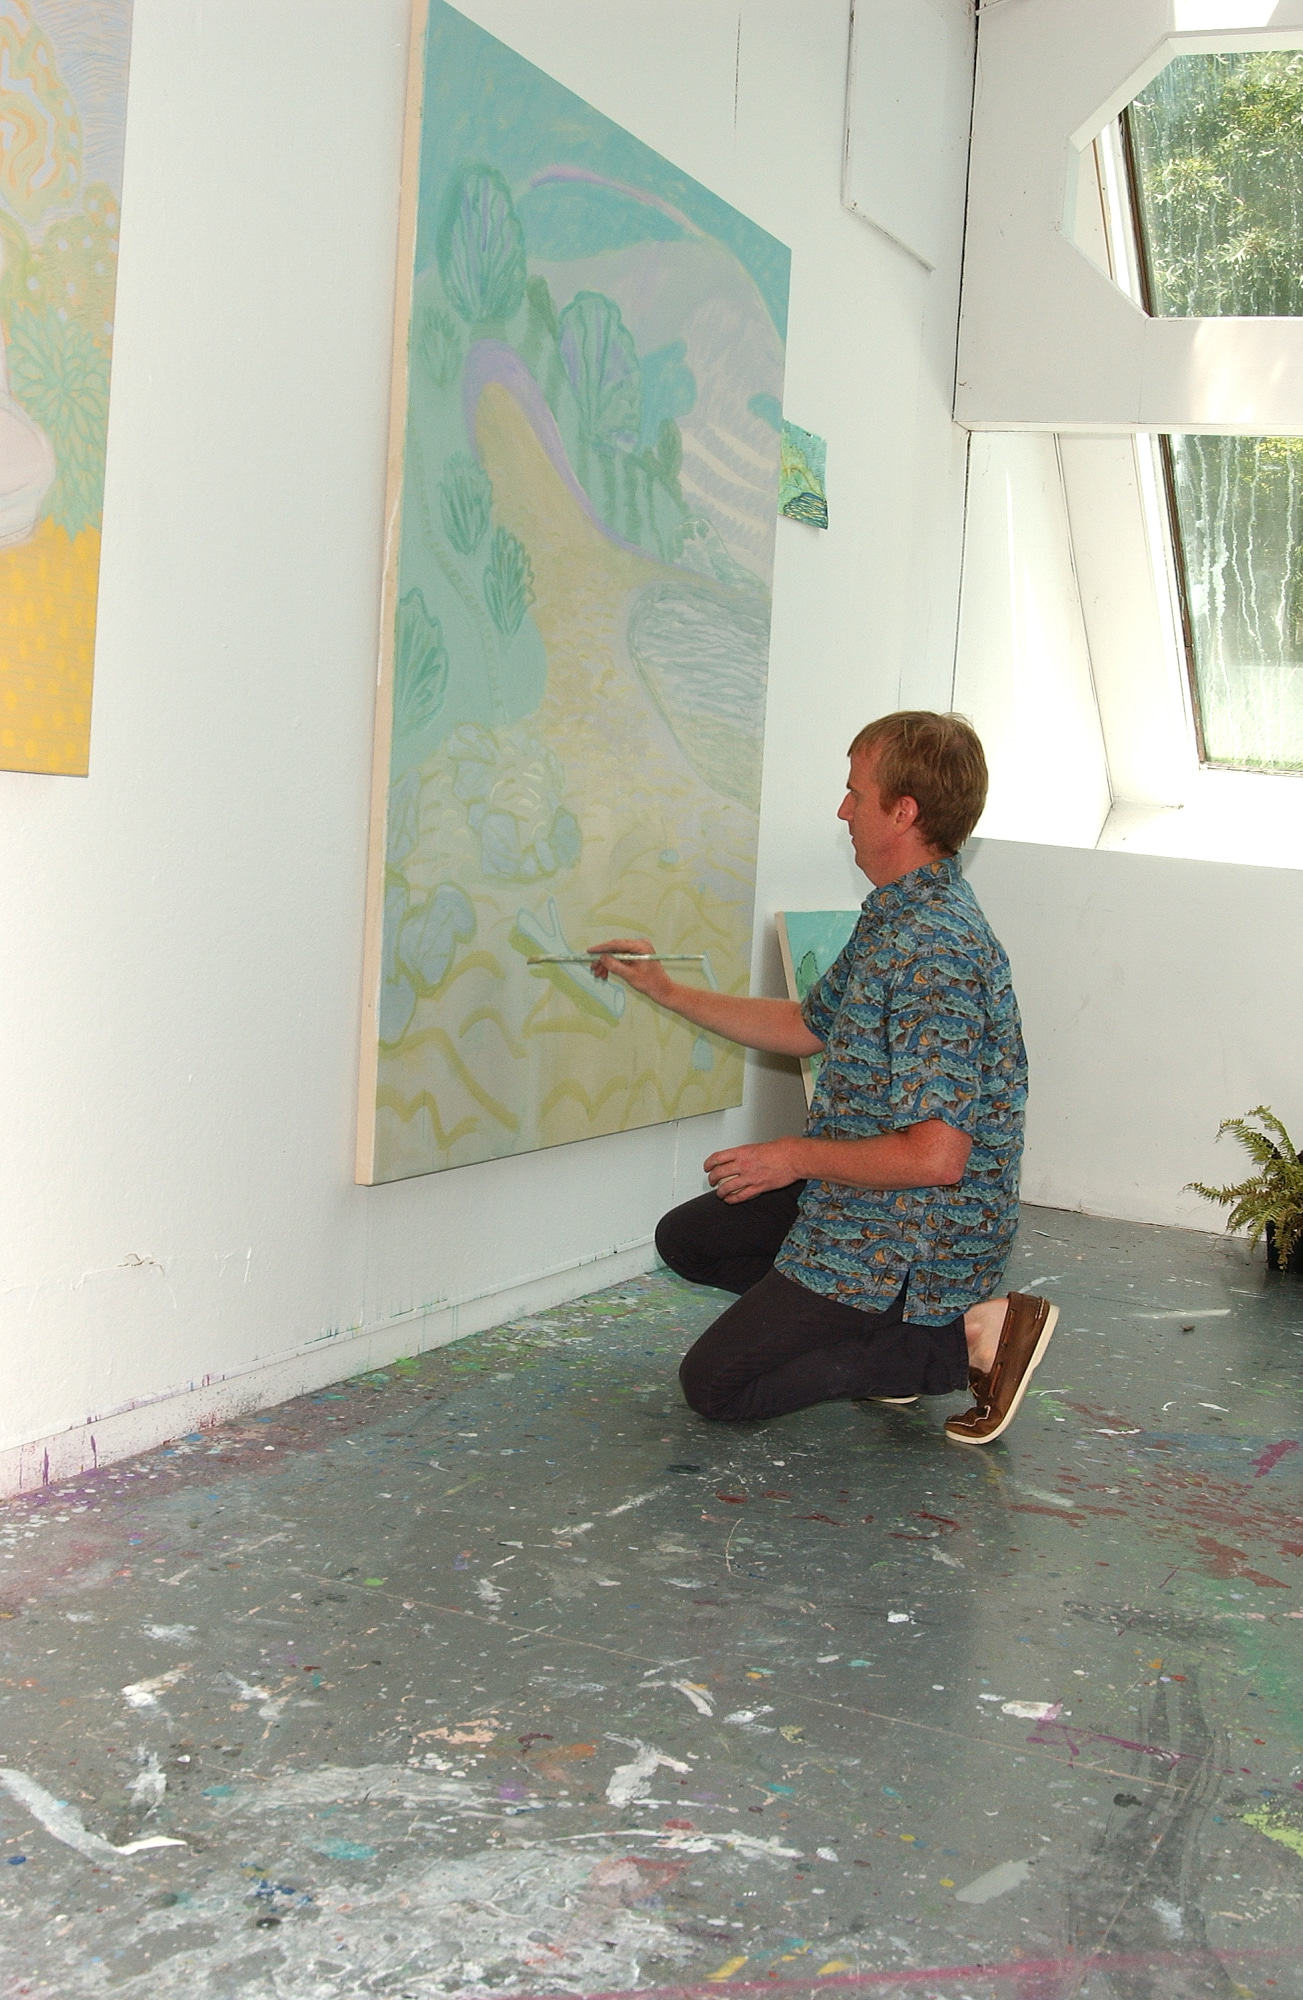 Artist Tyson Reeder in residence at the historic and former home and studio of the painter Elaine de Kooning, in East Hampton, NY. The sculptor John Chamberlain lived and woked in this home/studio after Elaine de Kooning died.